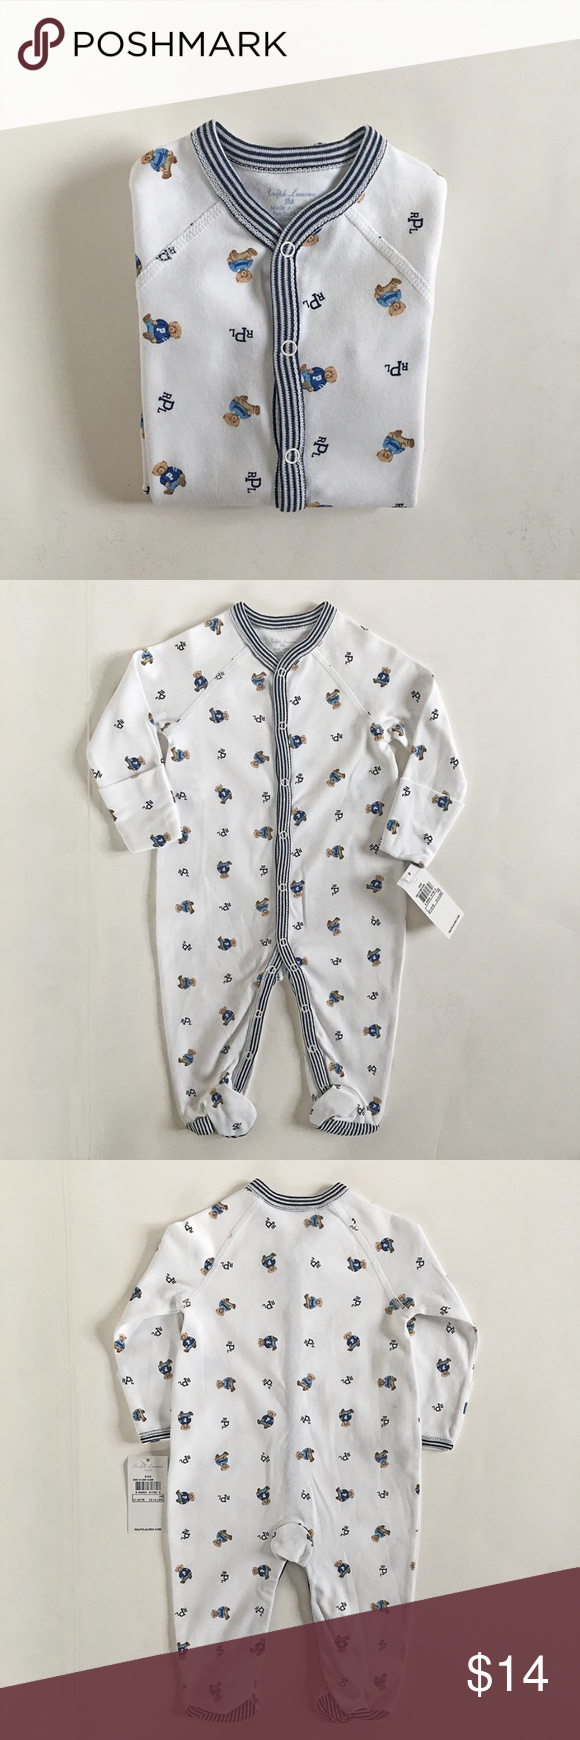 529586f61 Ralph Lauren Polo Bear Cotton Onesie Ralph Lauren Baby Boy One Piece Footie  . Brand NEW